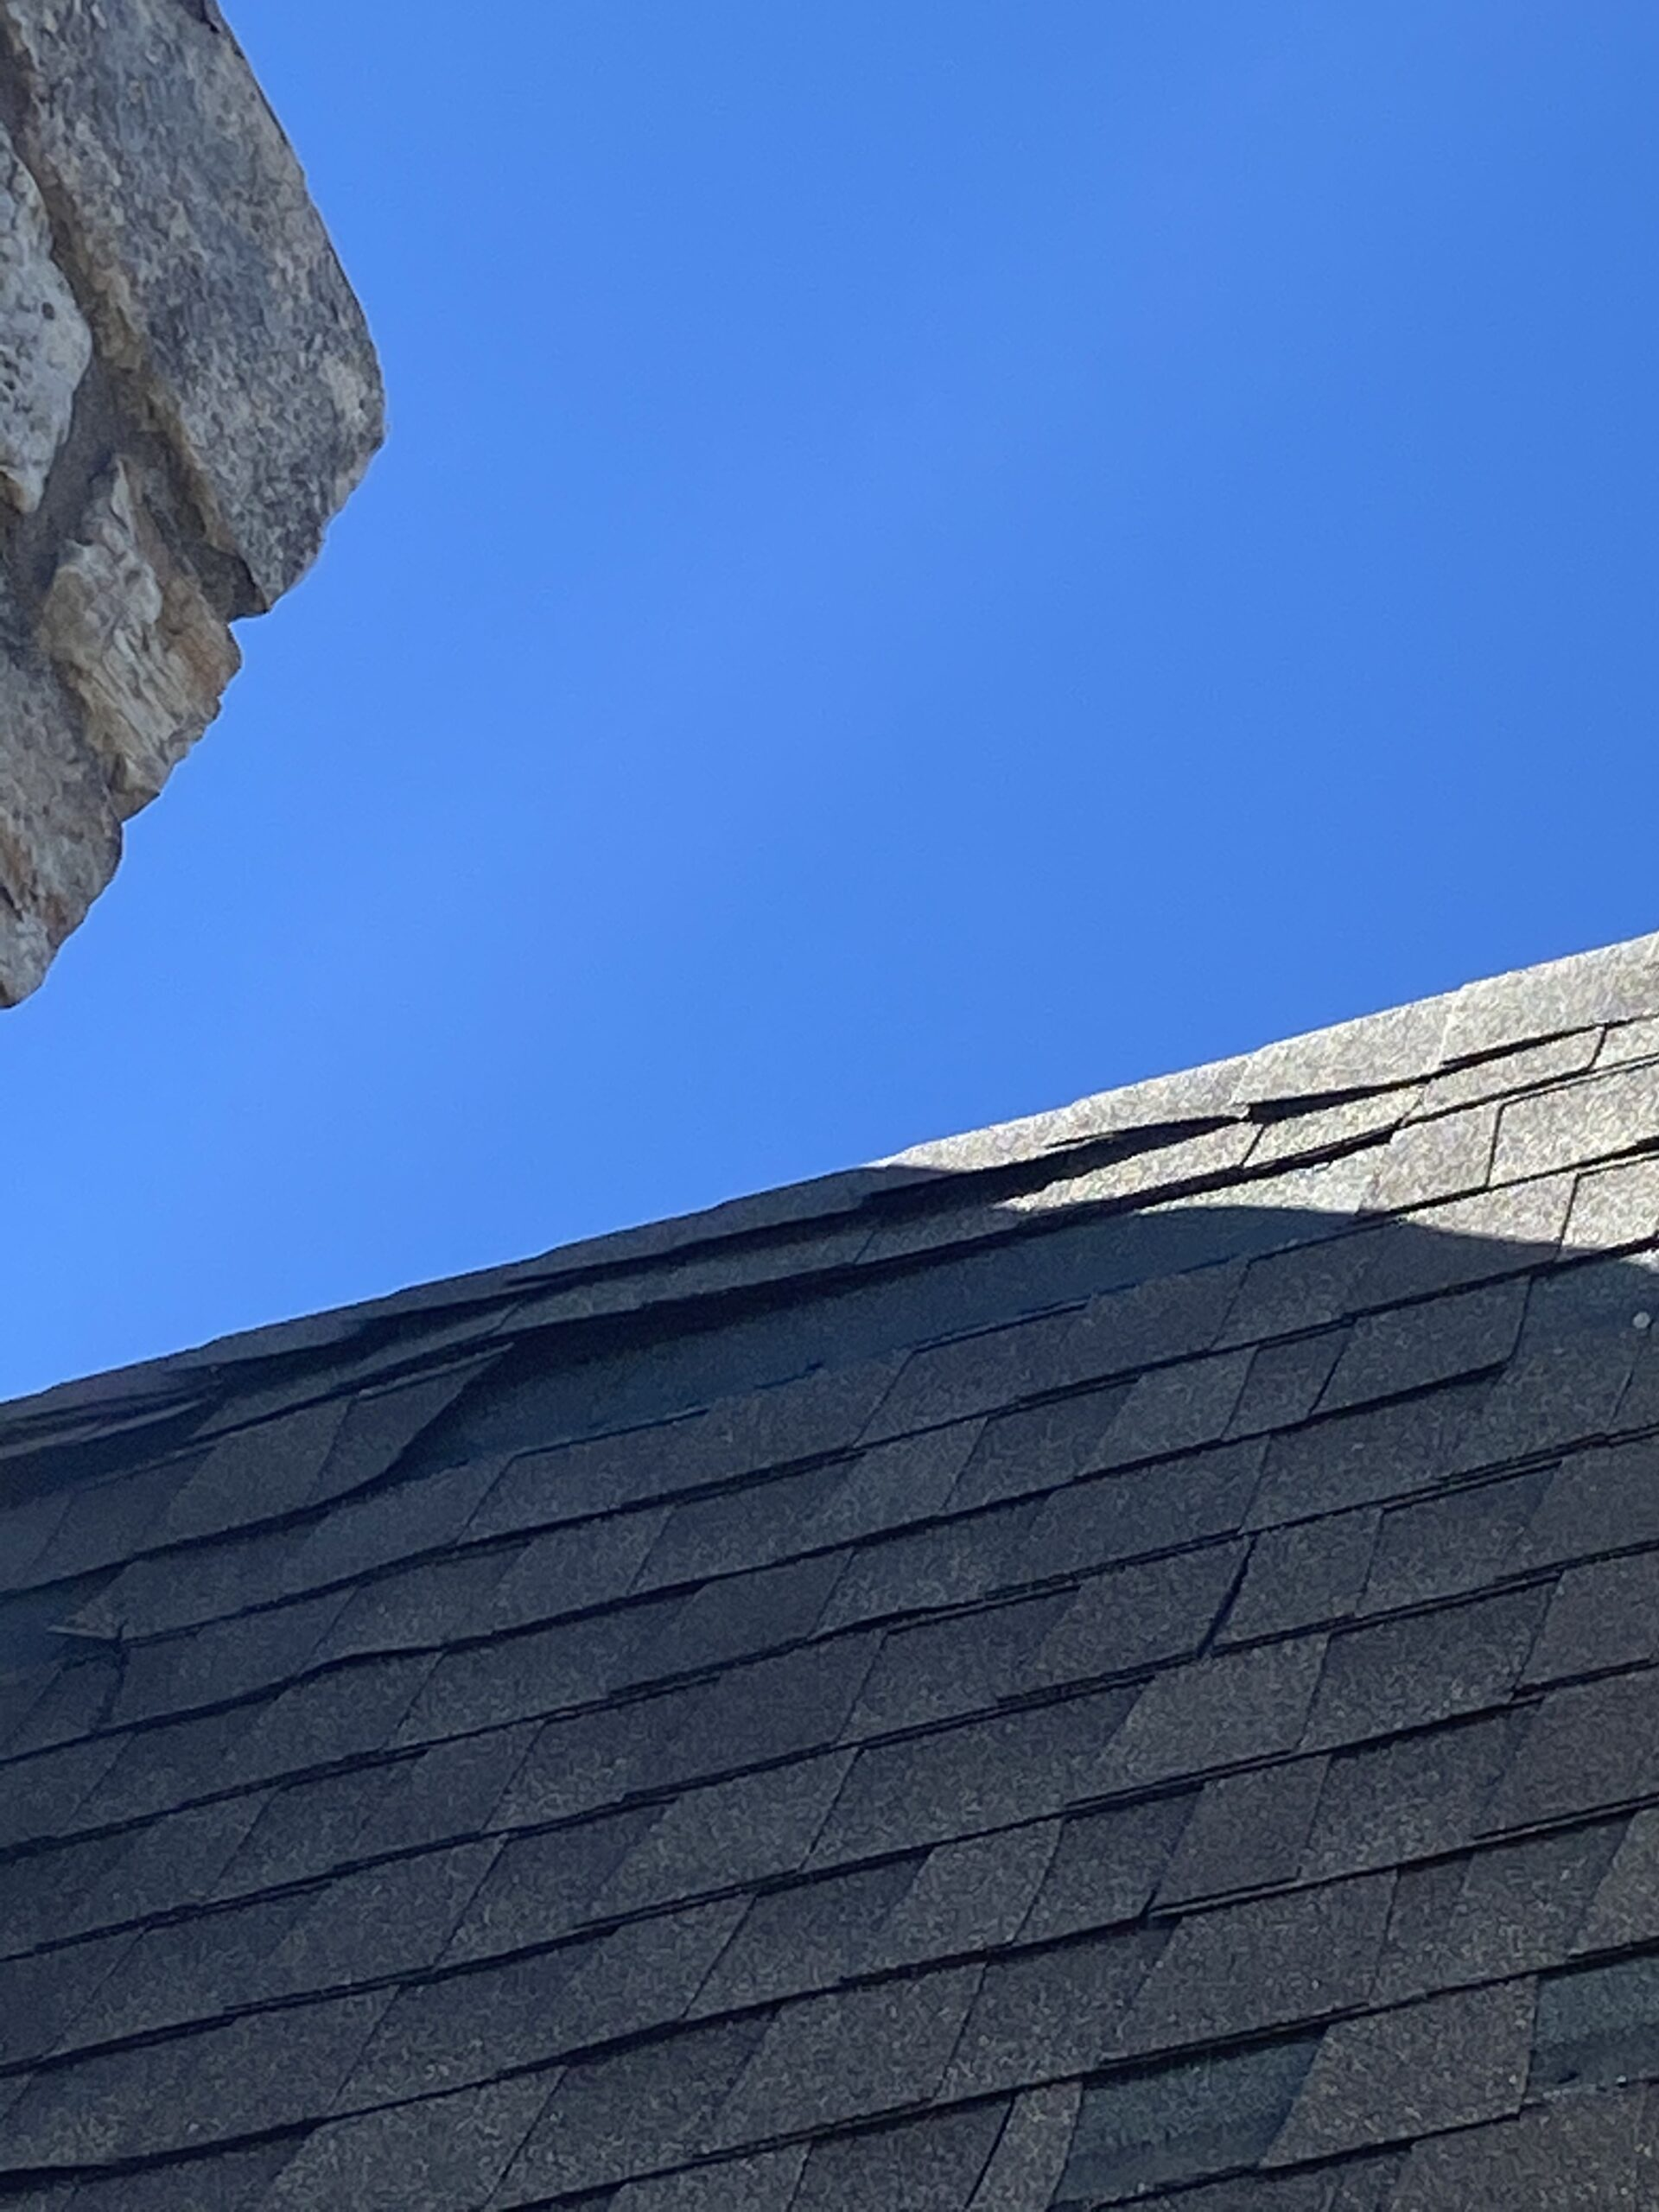 This is a picture of missing shingles behind the chimney